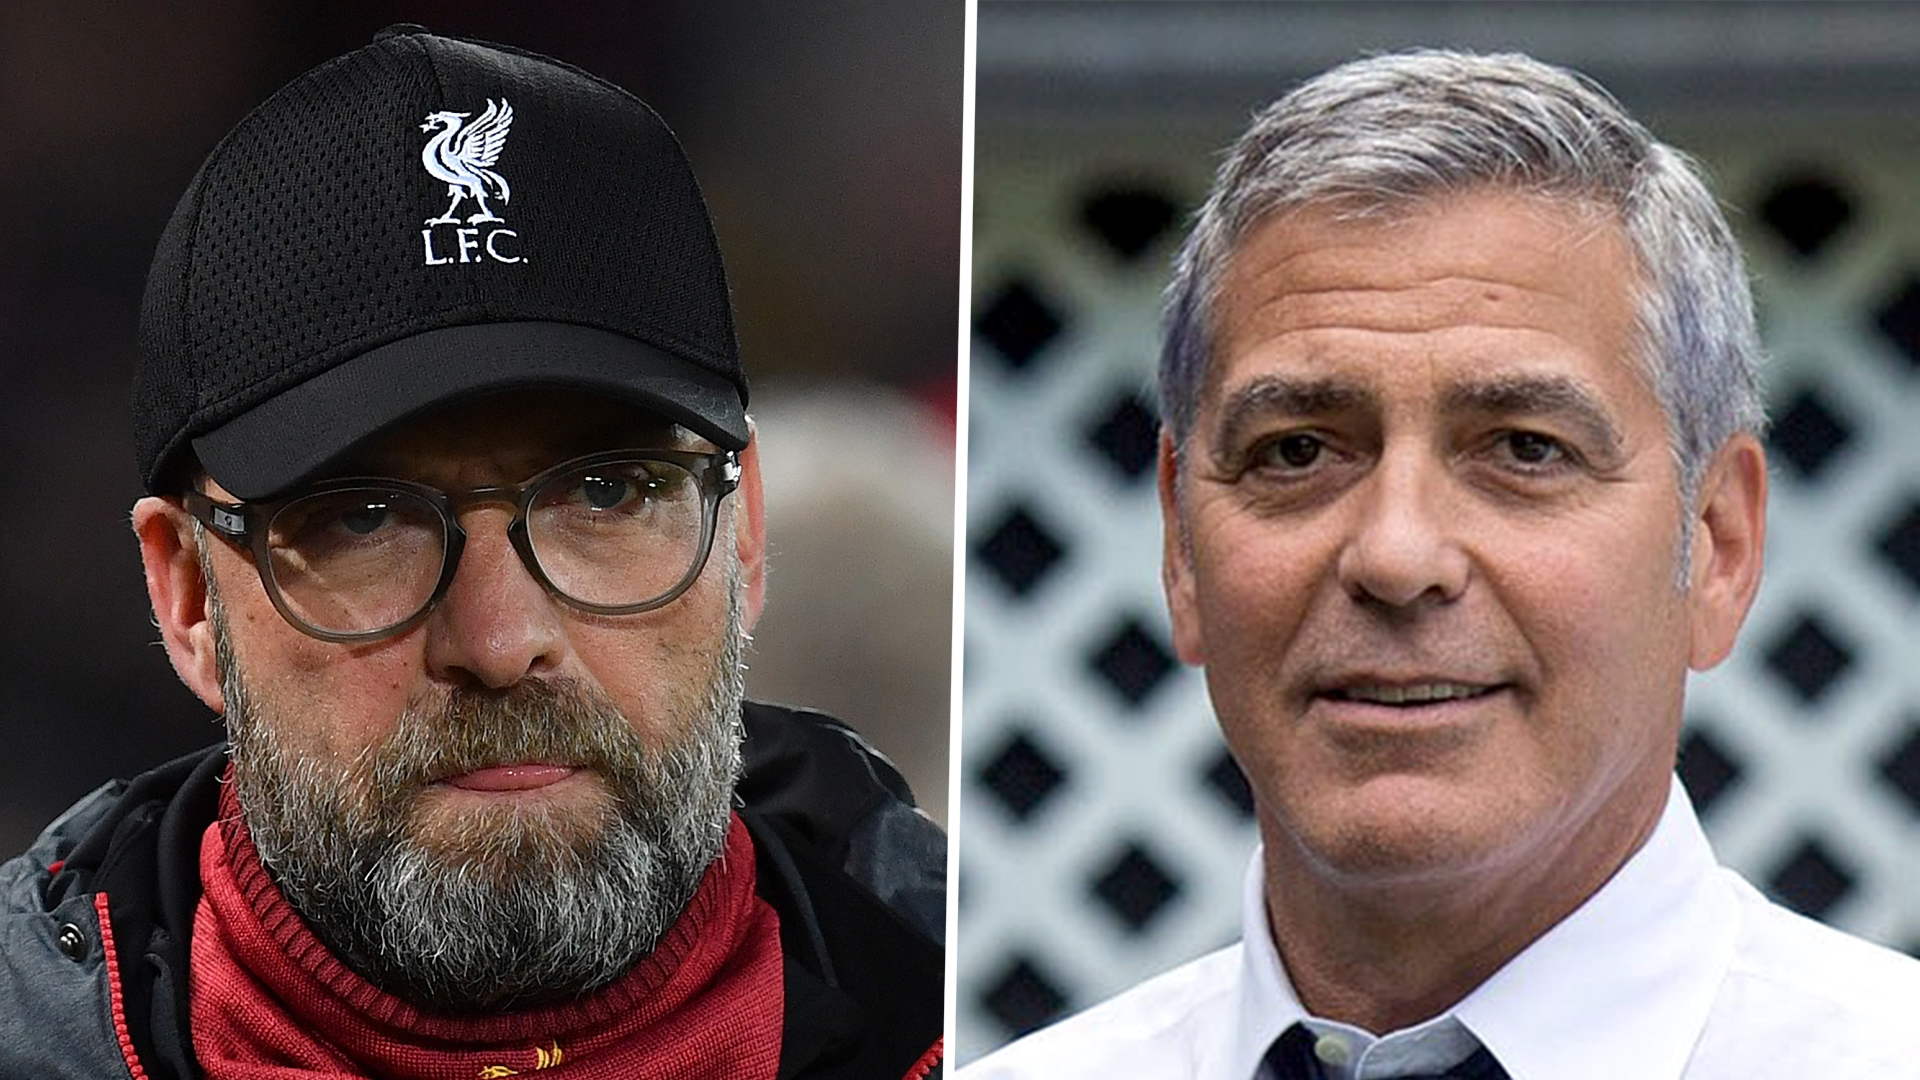 Klopp is a league above – he's the George Clooney of football, says German photographer Ripke